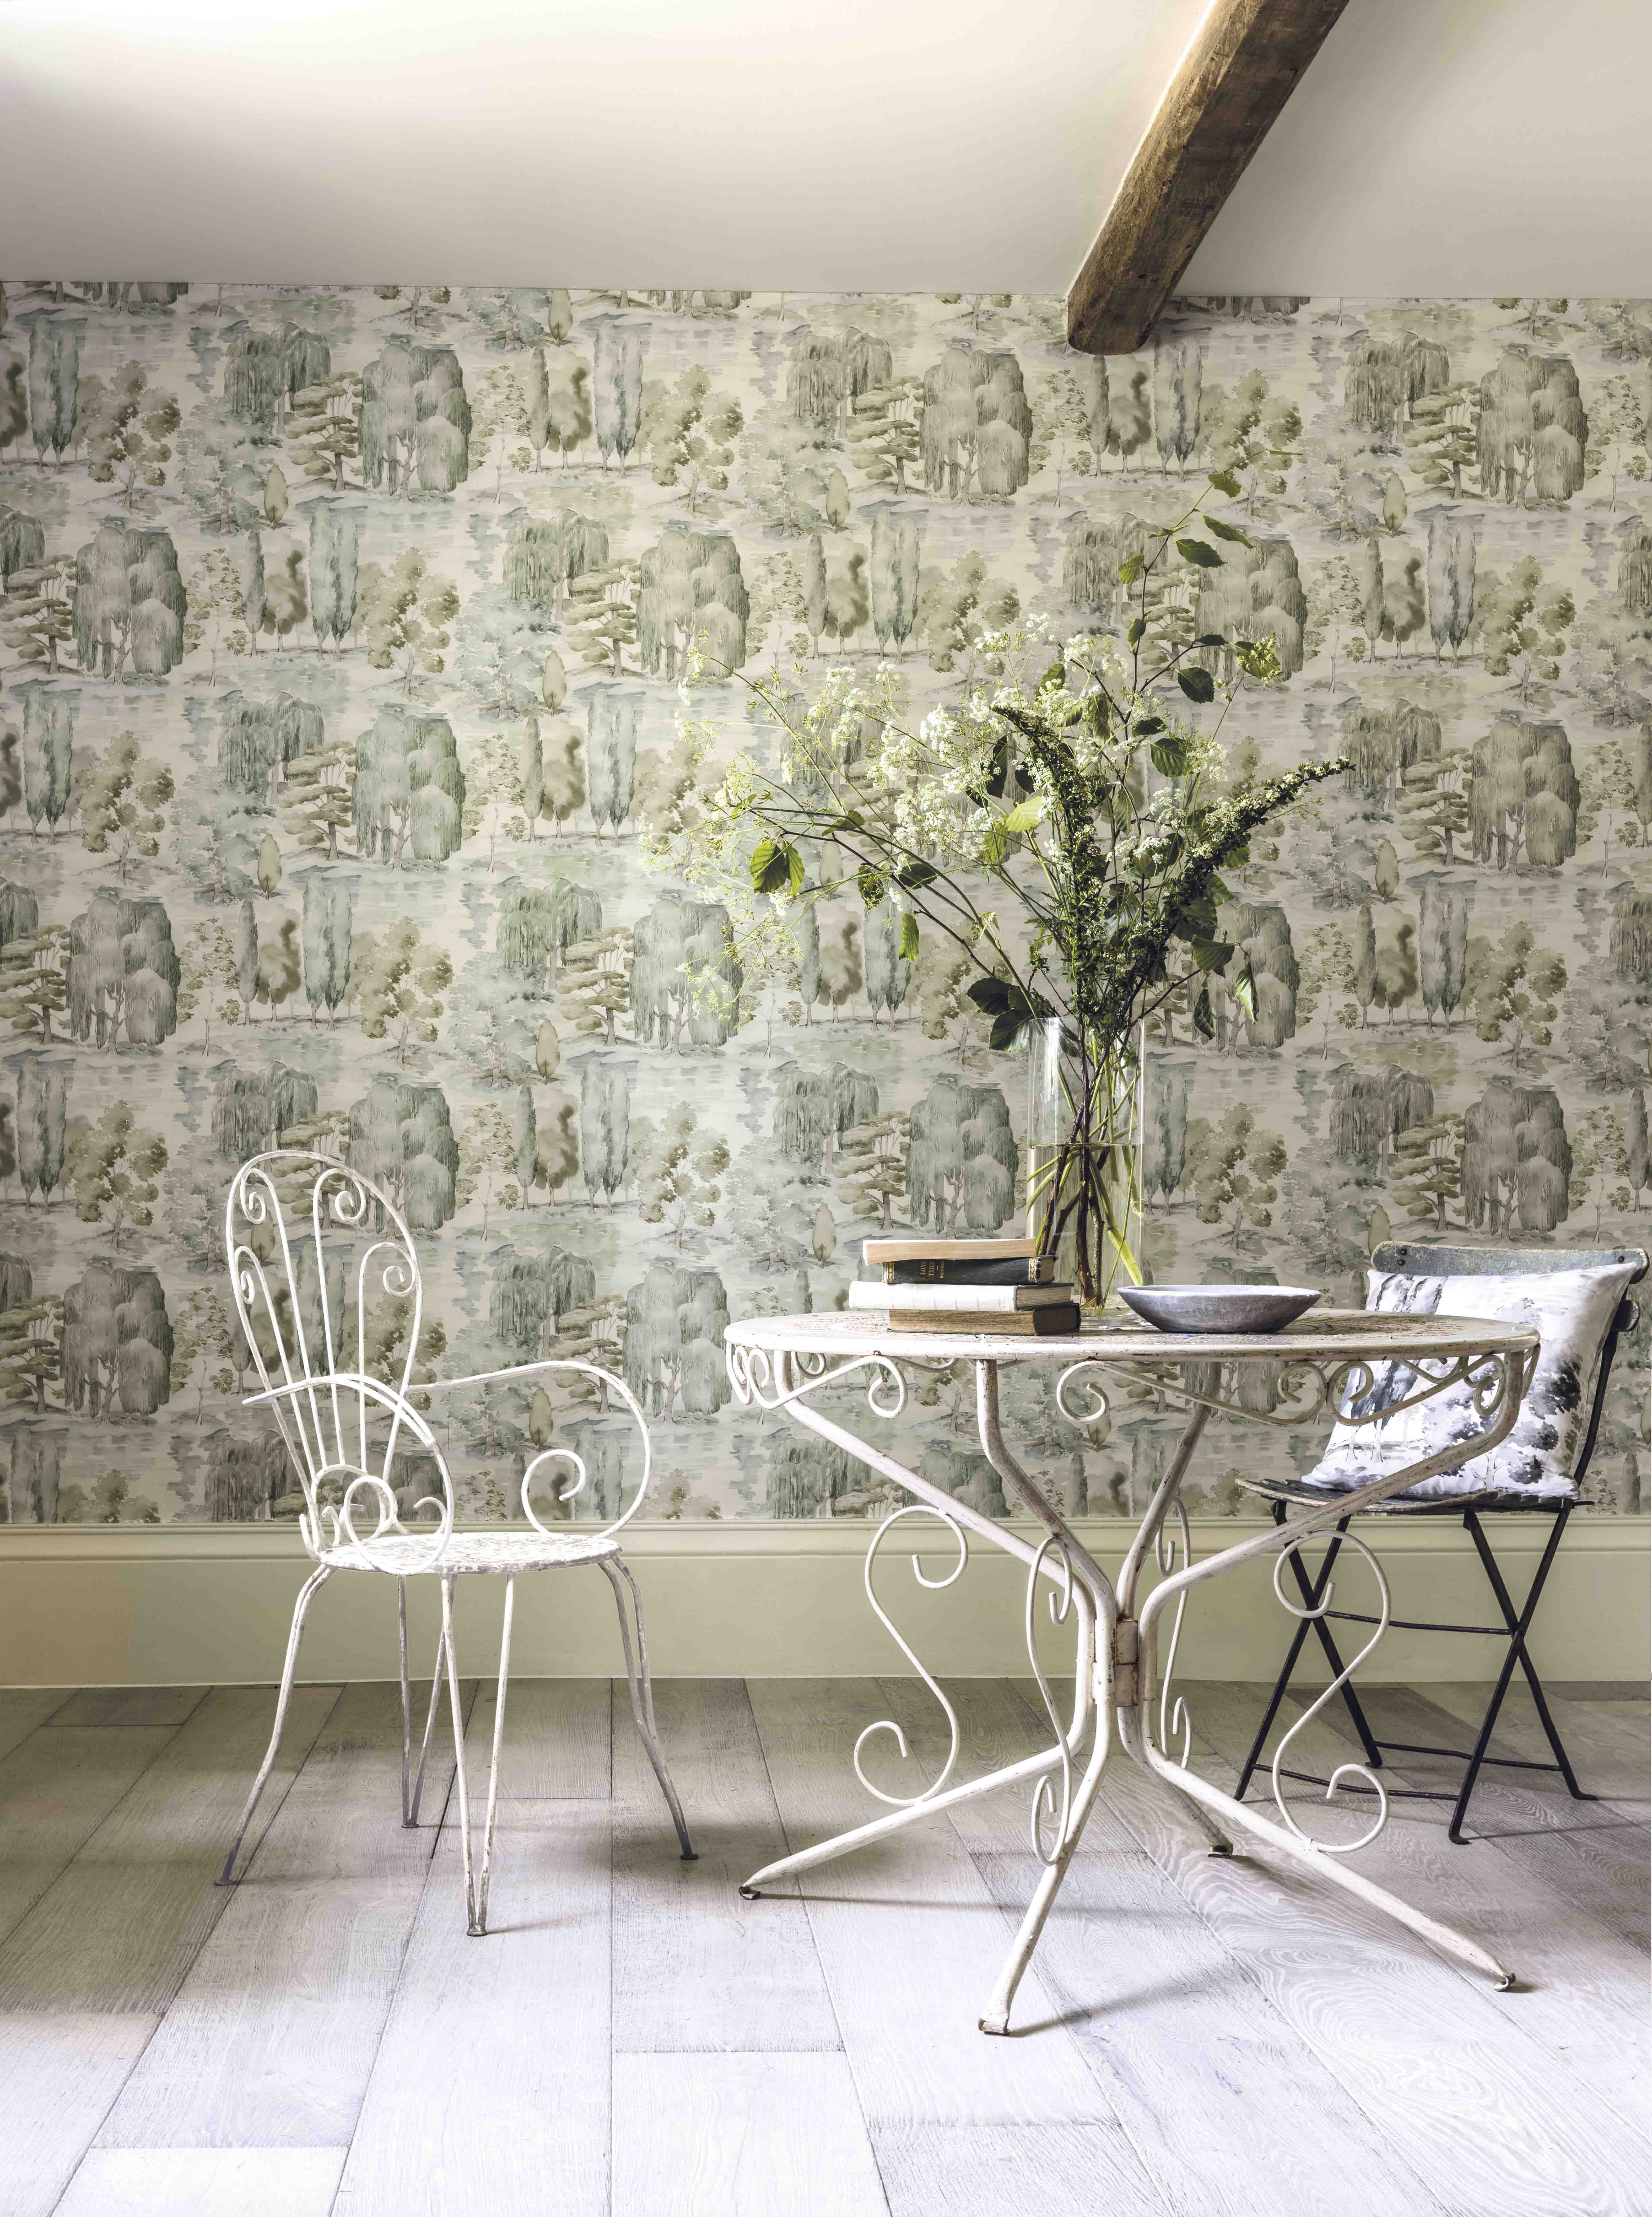 This beautiful Waterperry wallpaper from Sanderson, featuring watercolour brush strokes representing an undulating landscape sits perfectly with the vinatge ...